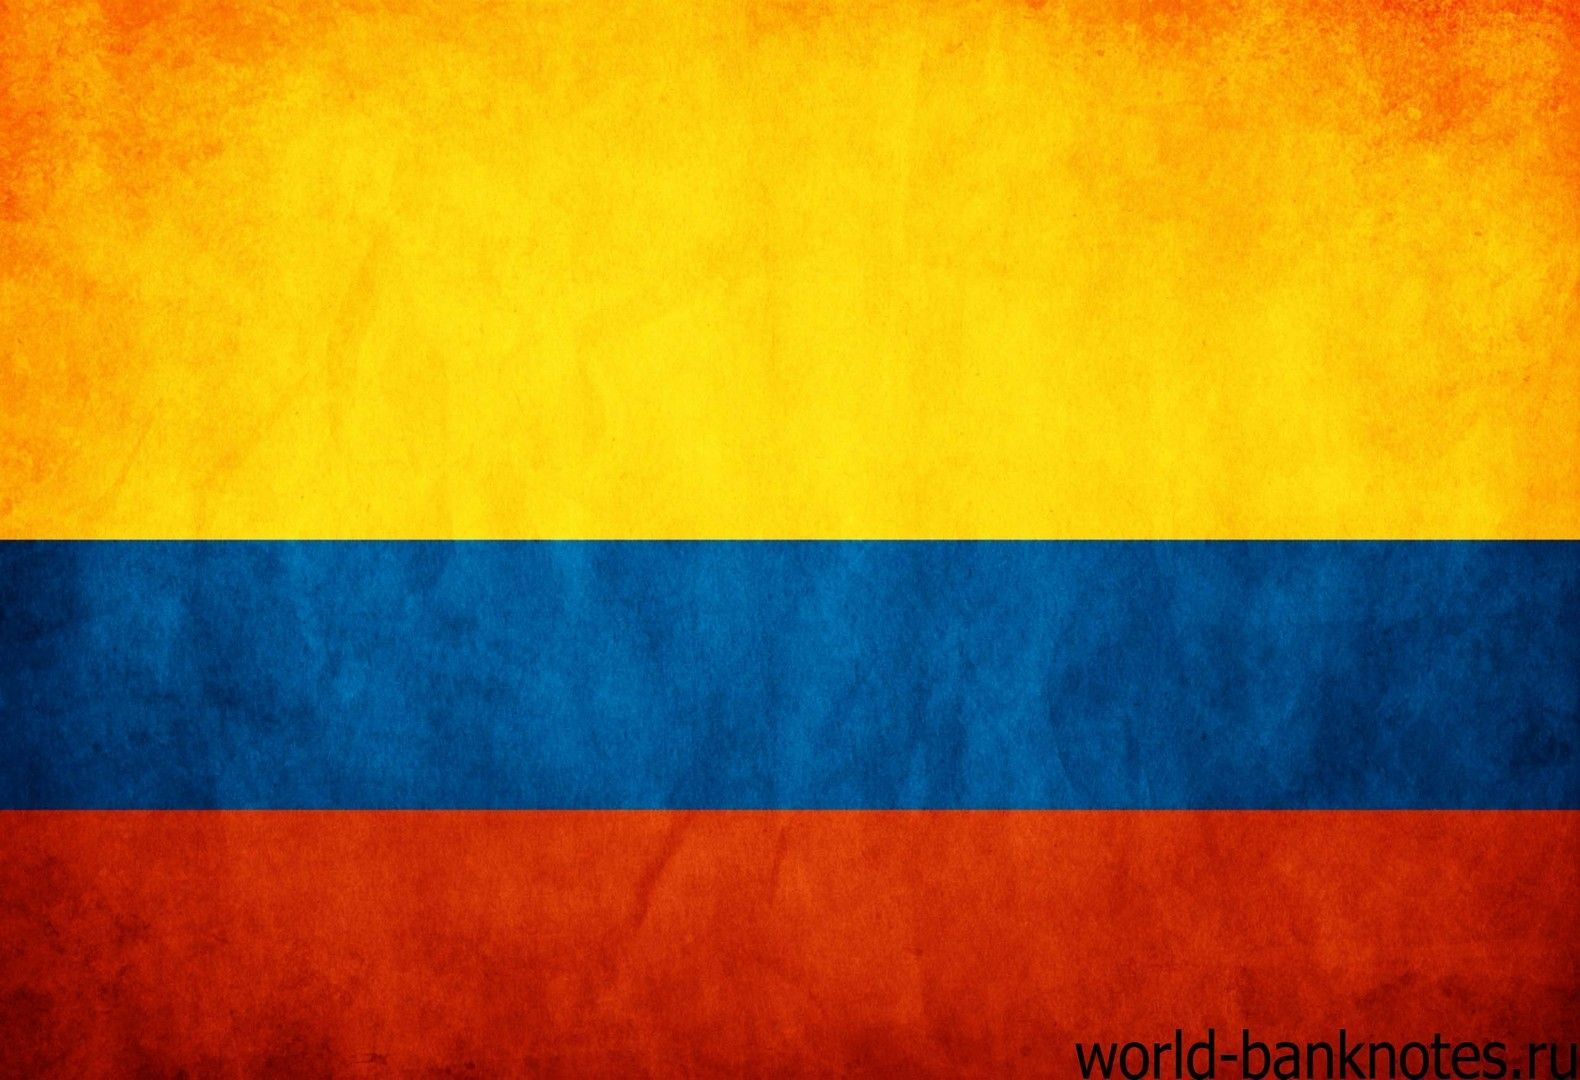 1580x1080 Flag of Colombia wallpaper   Flags wallpaper   Pinterest   Colombia ...